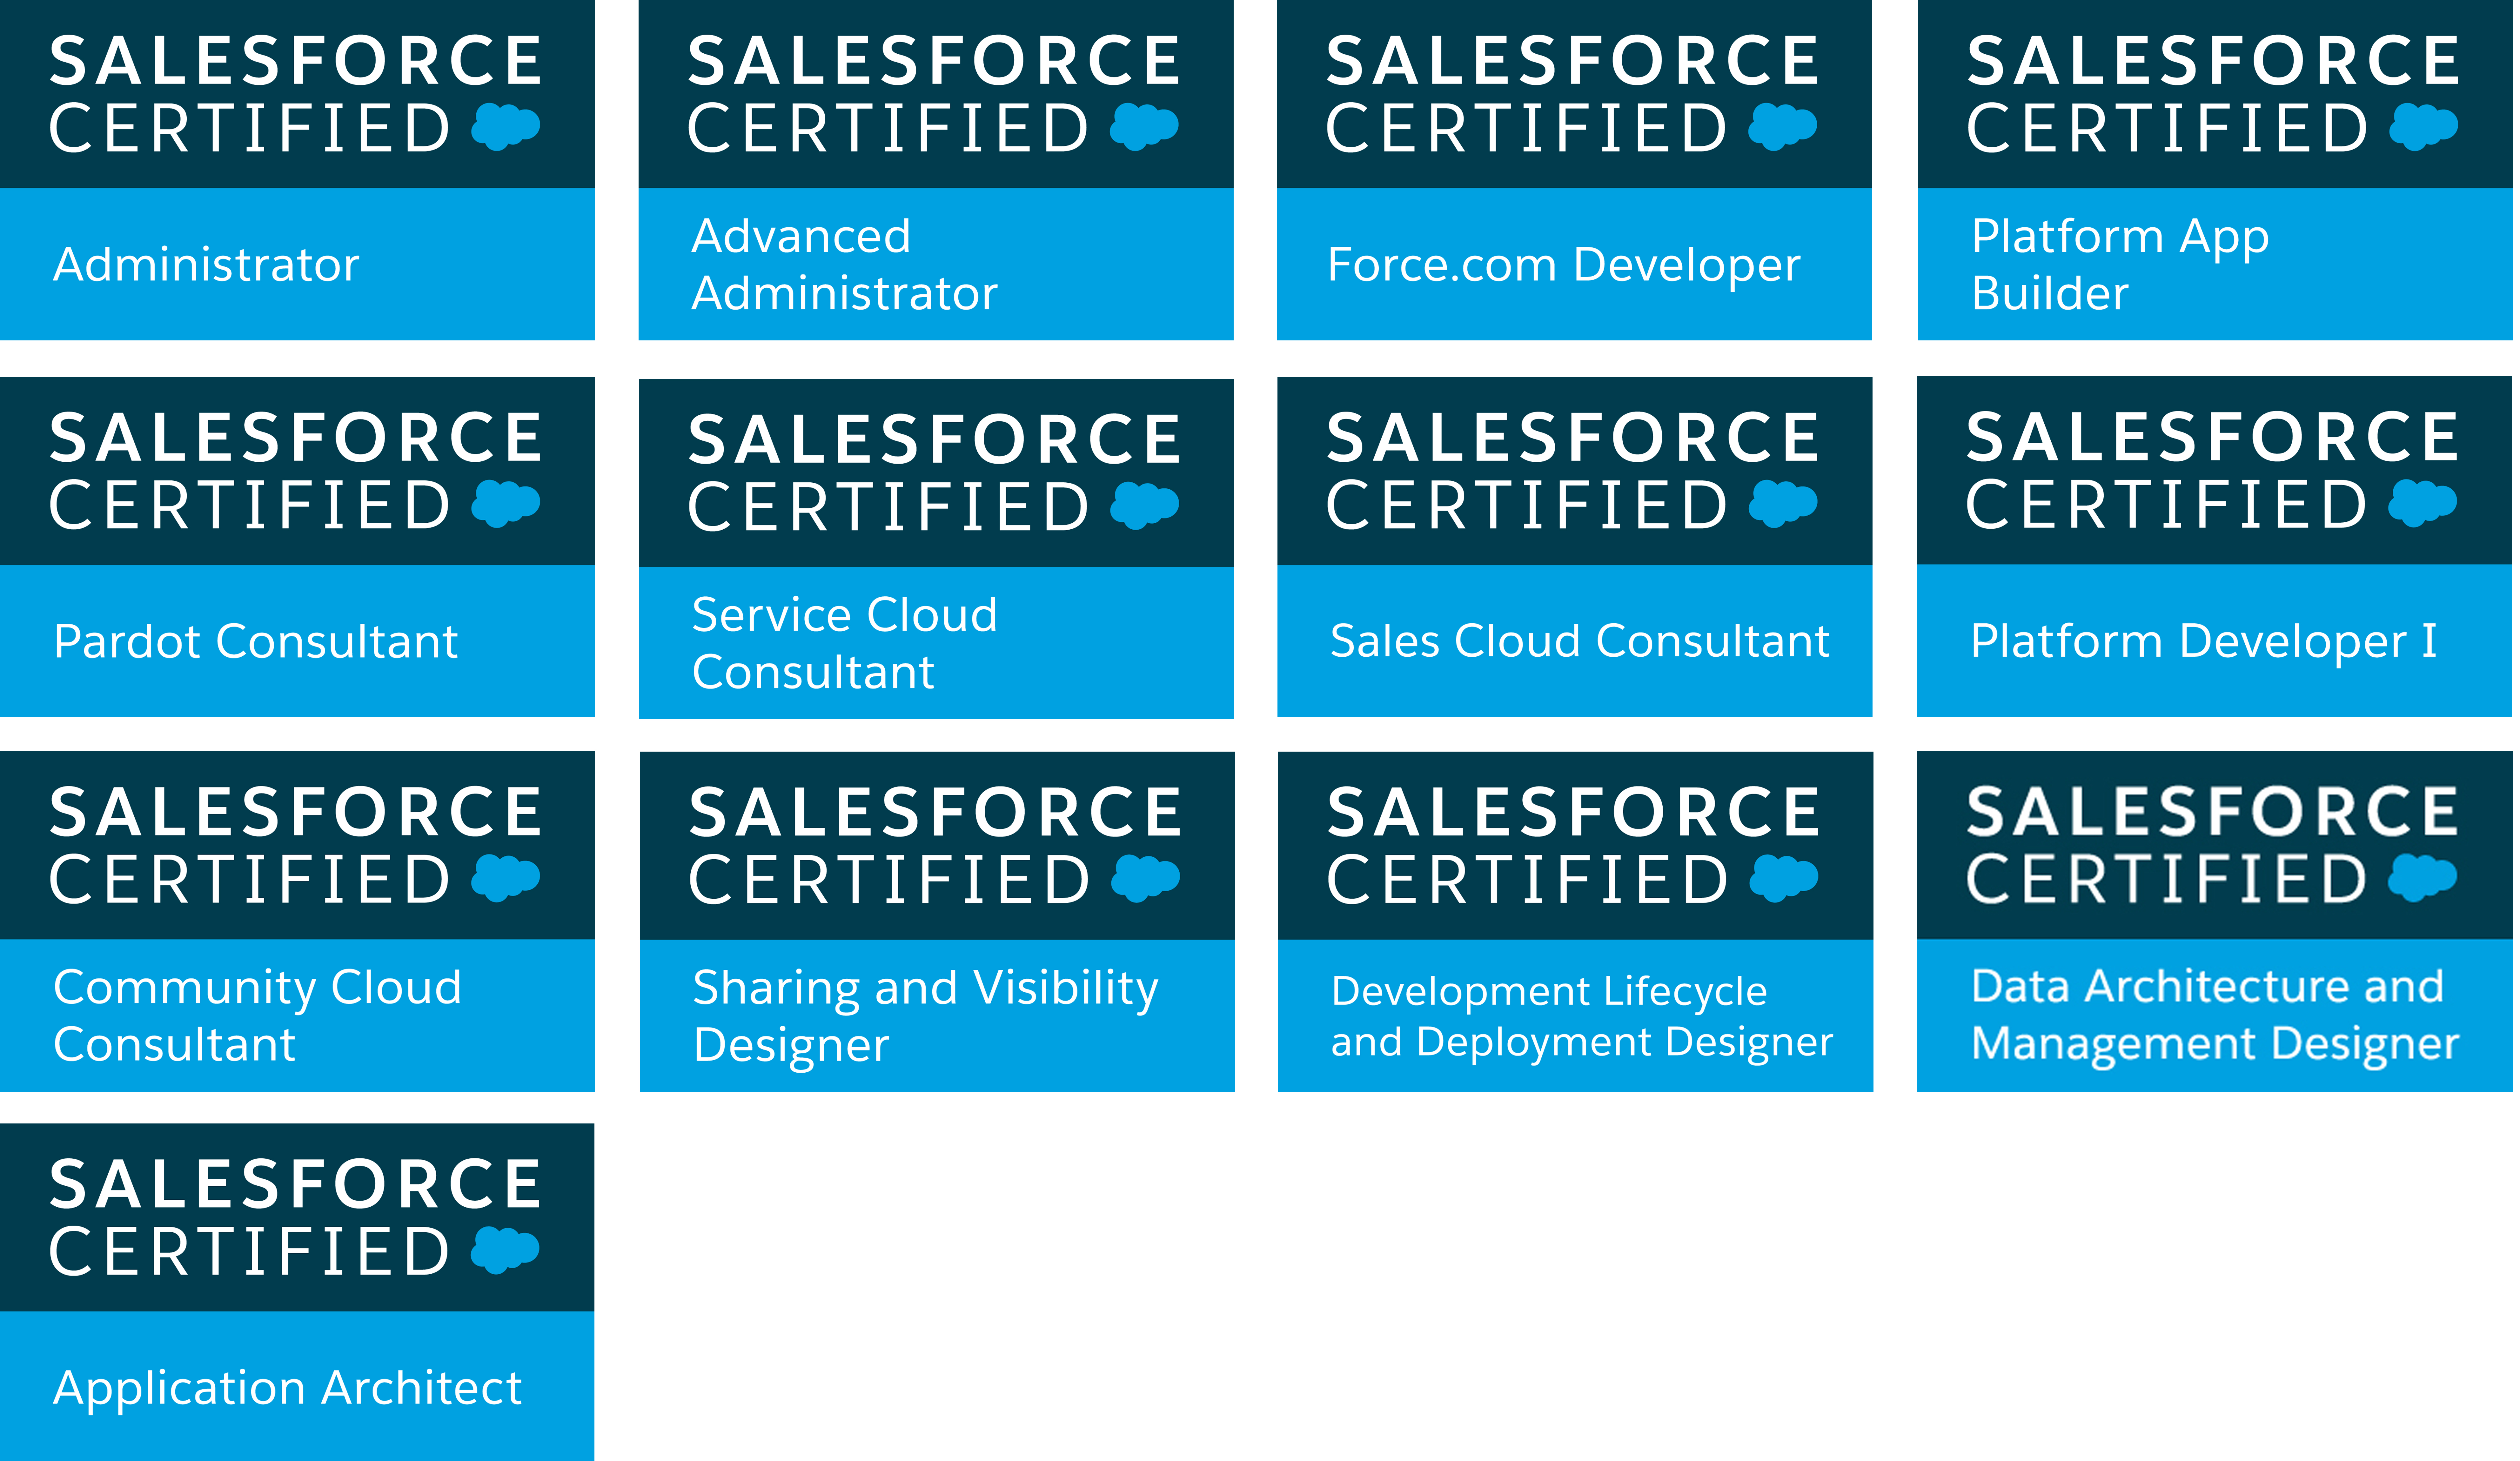 Sfdc Certification Images Creative Certificate Design Inspiration